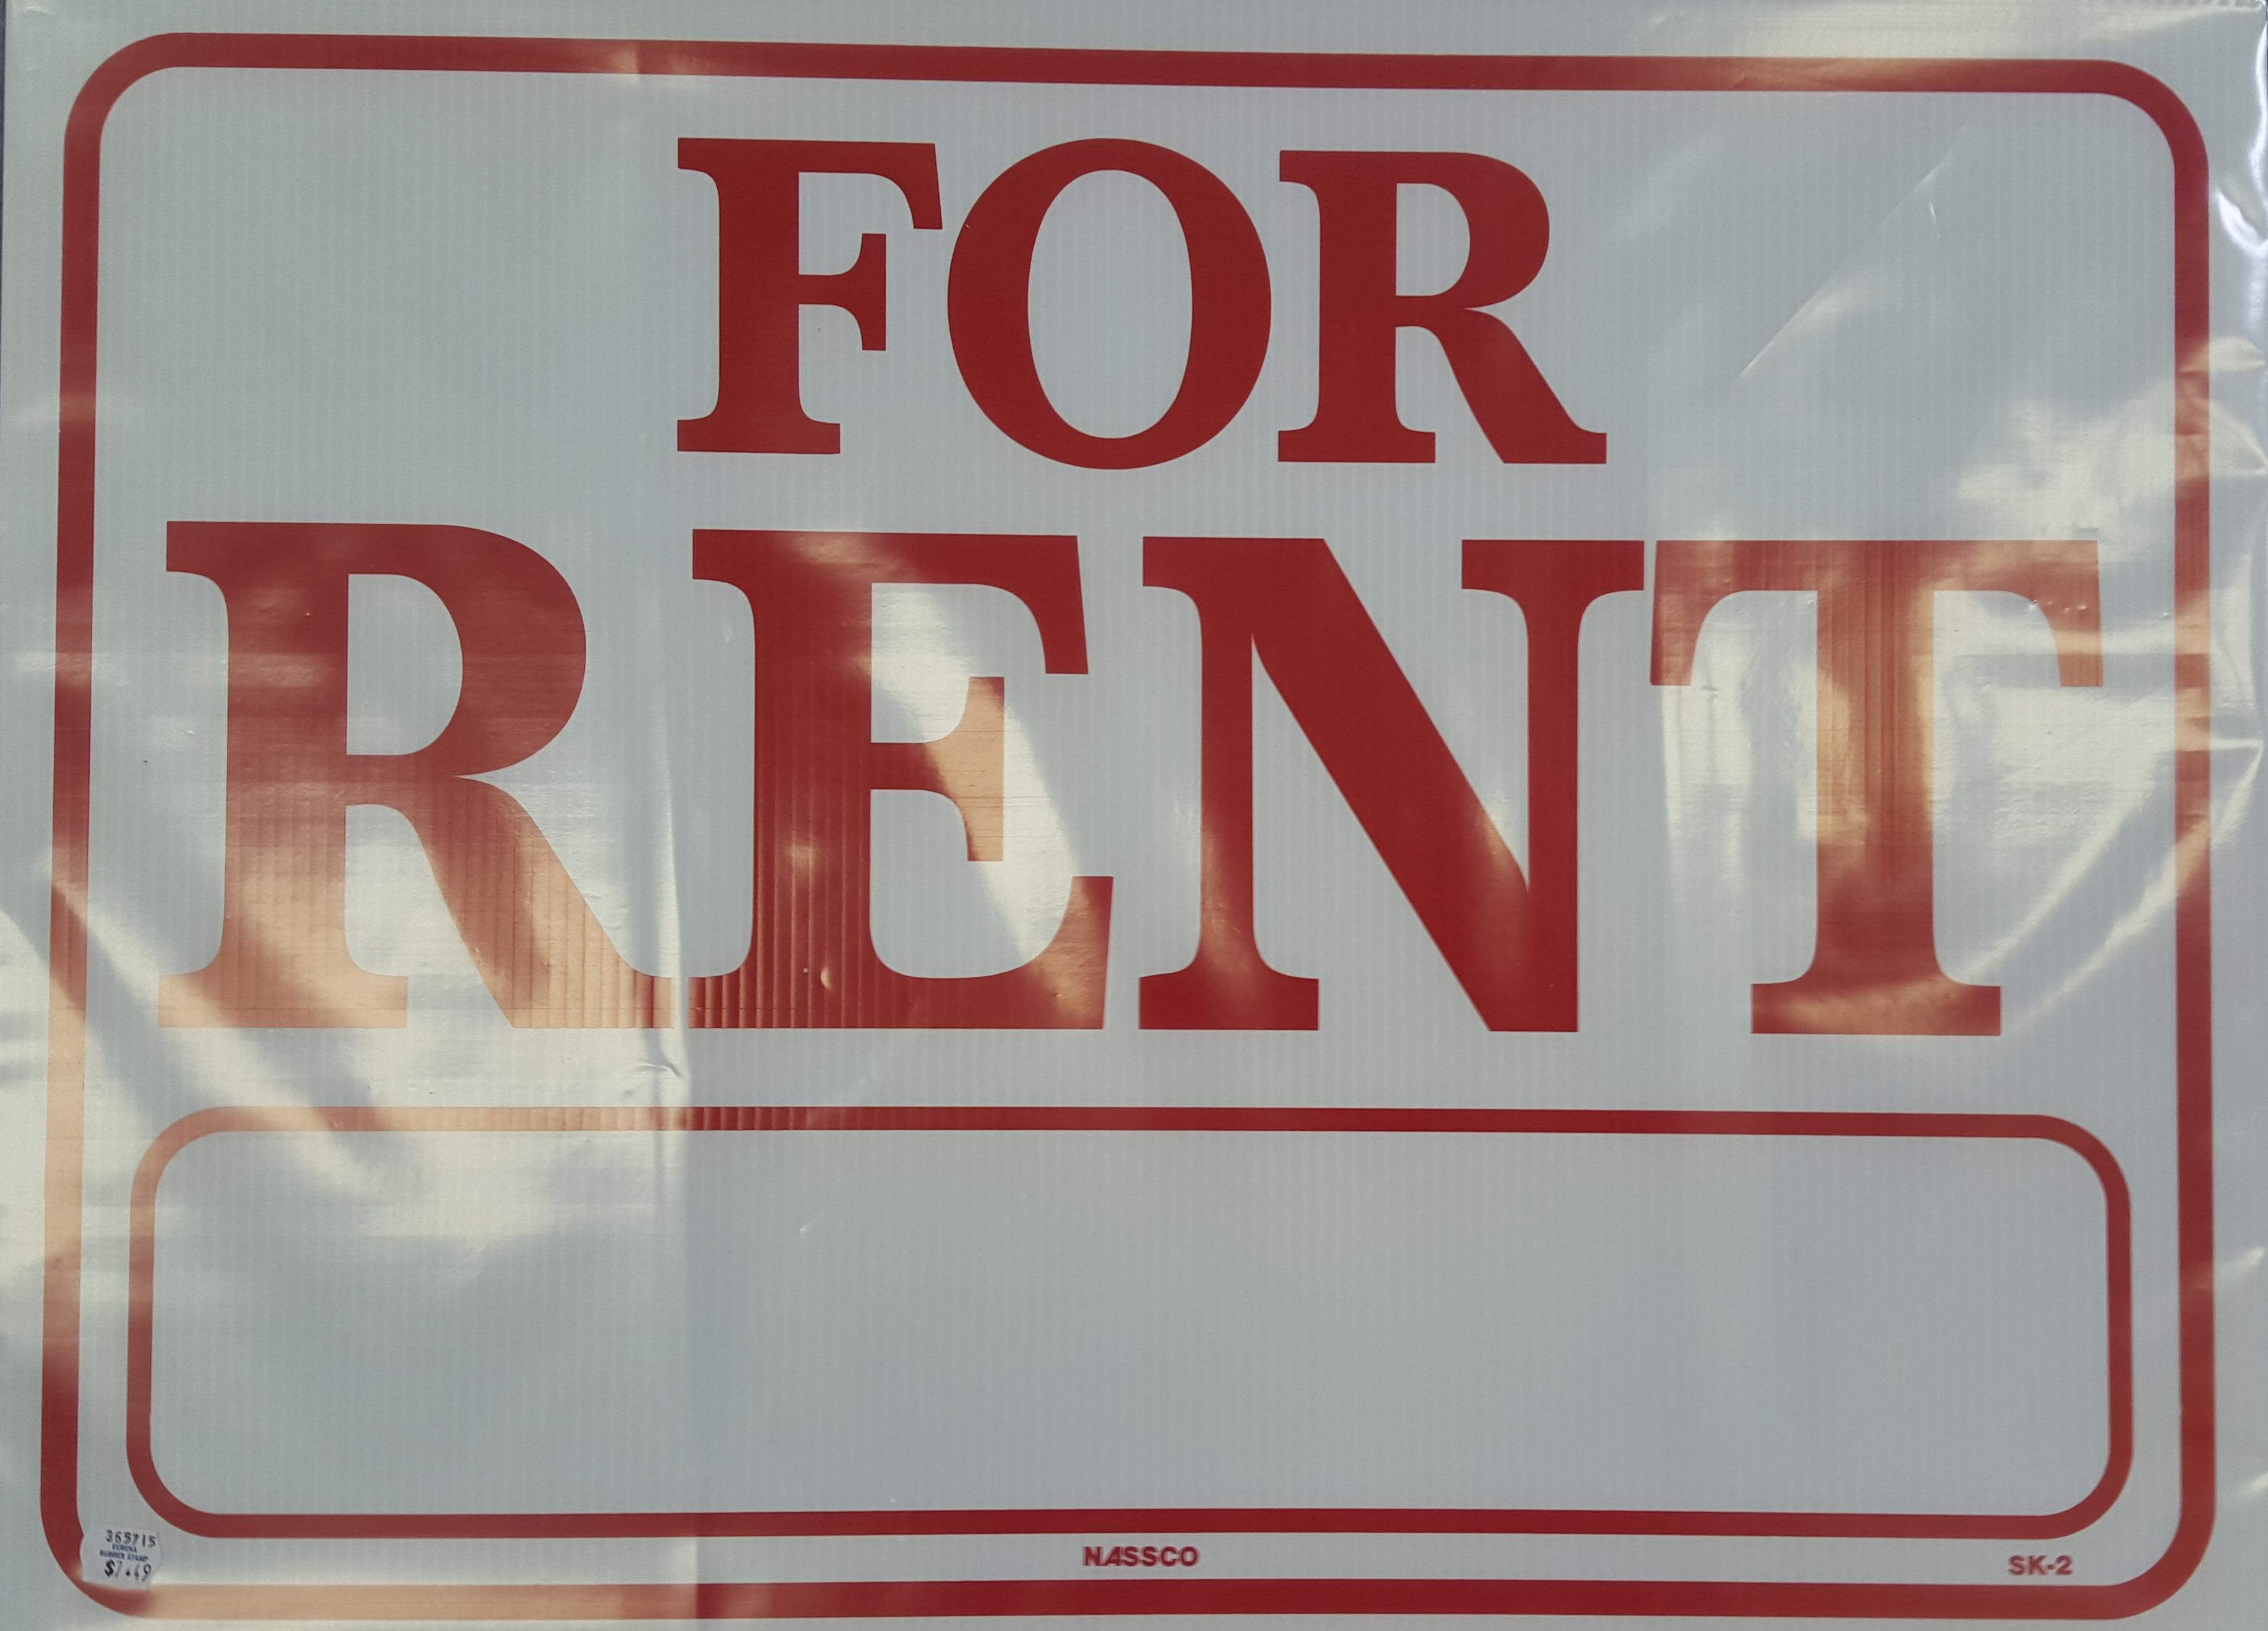 For Rent Red and White Sign